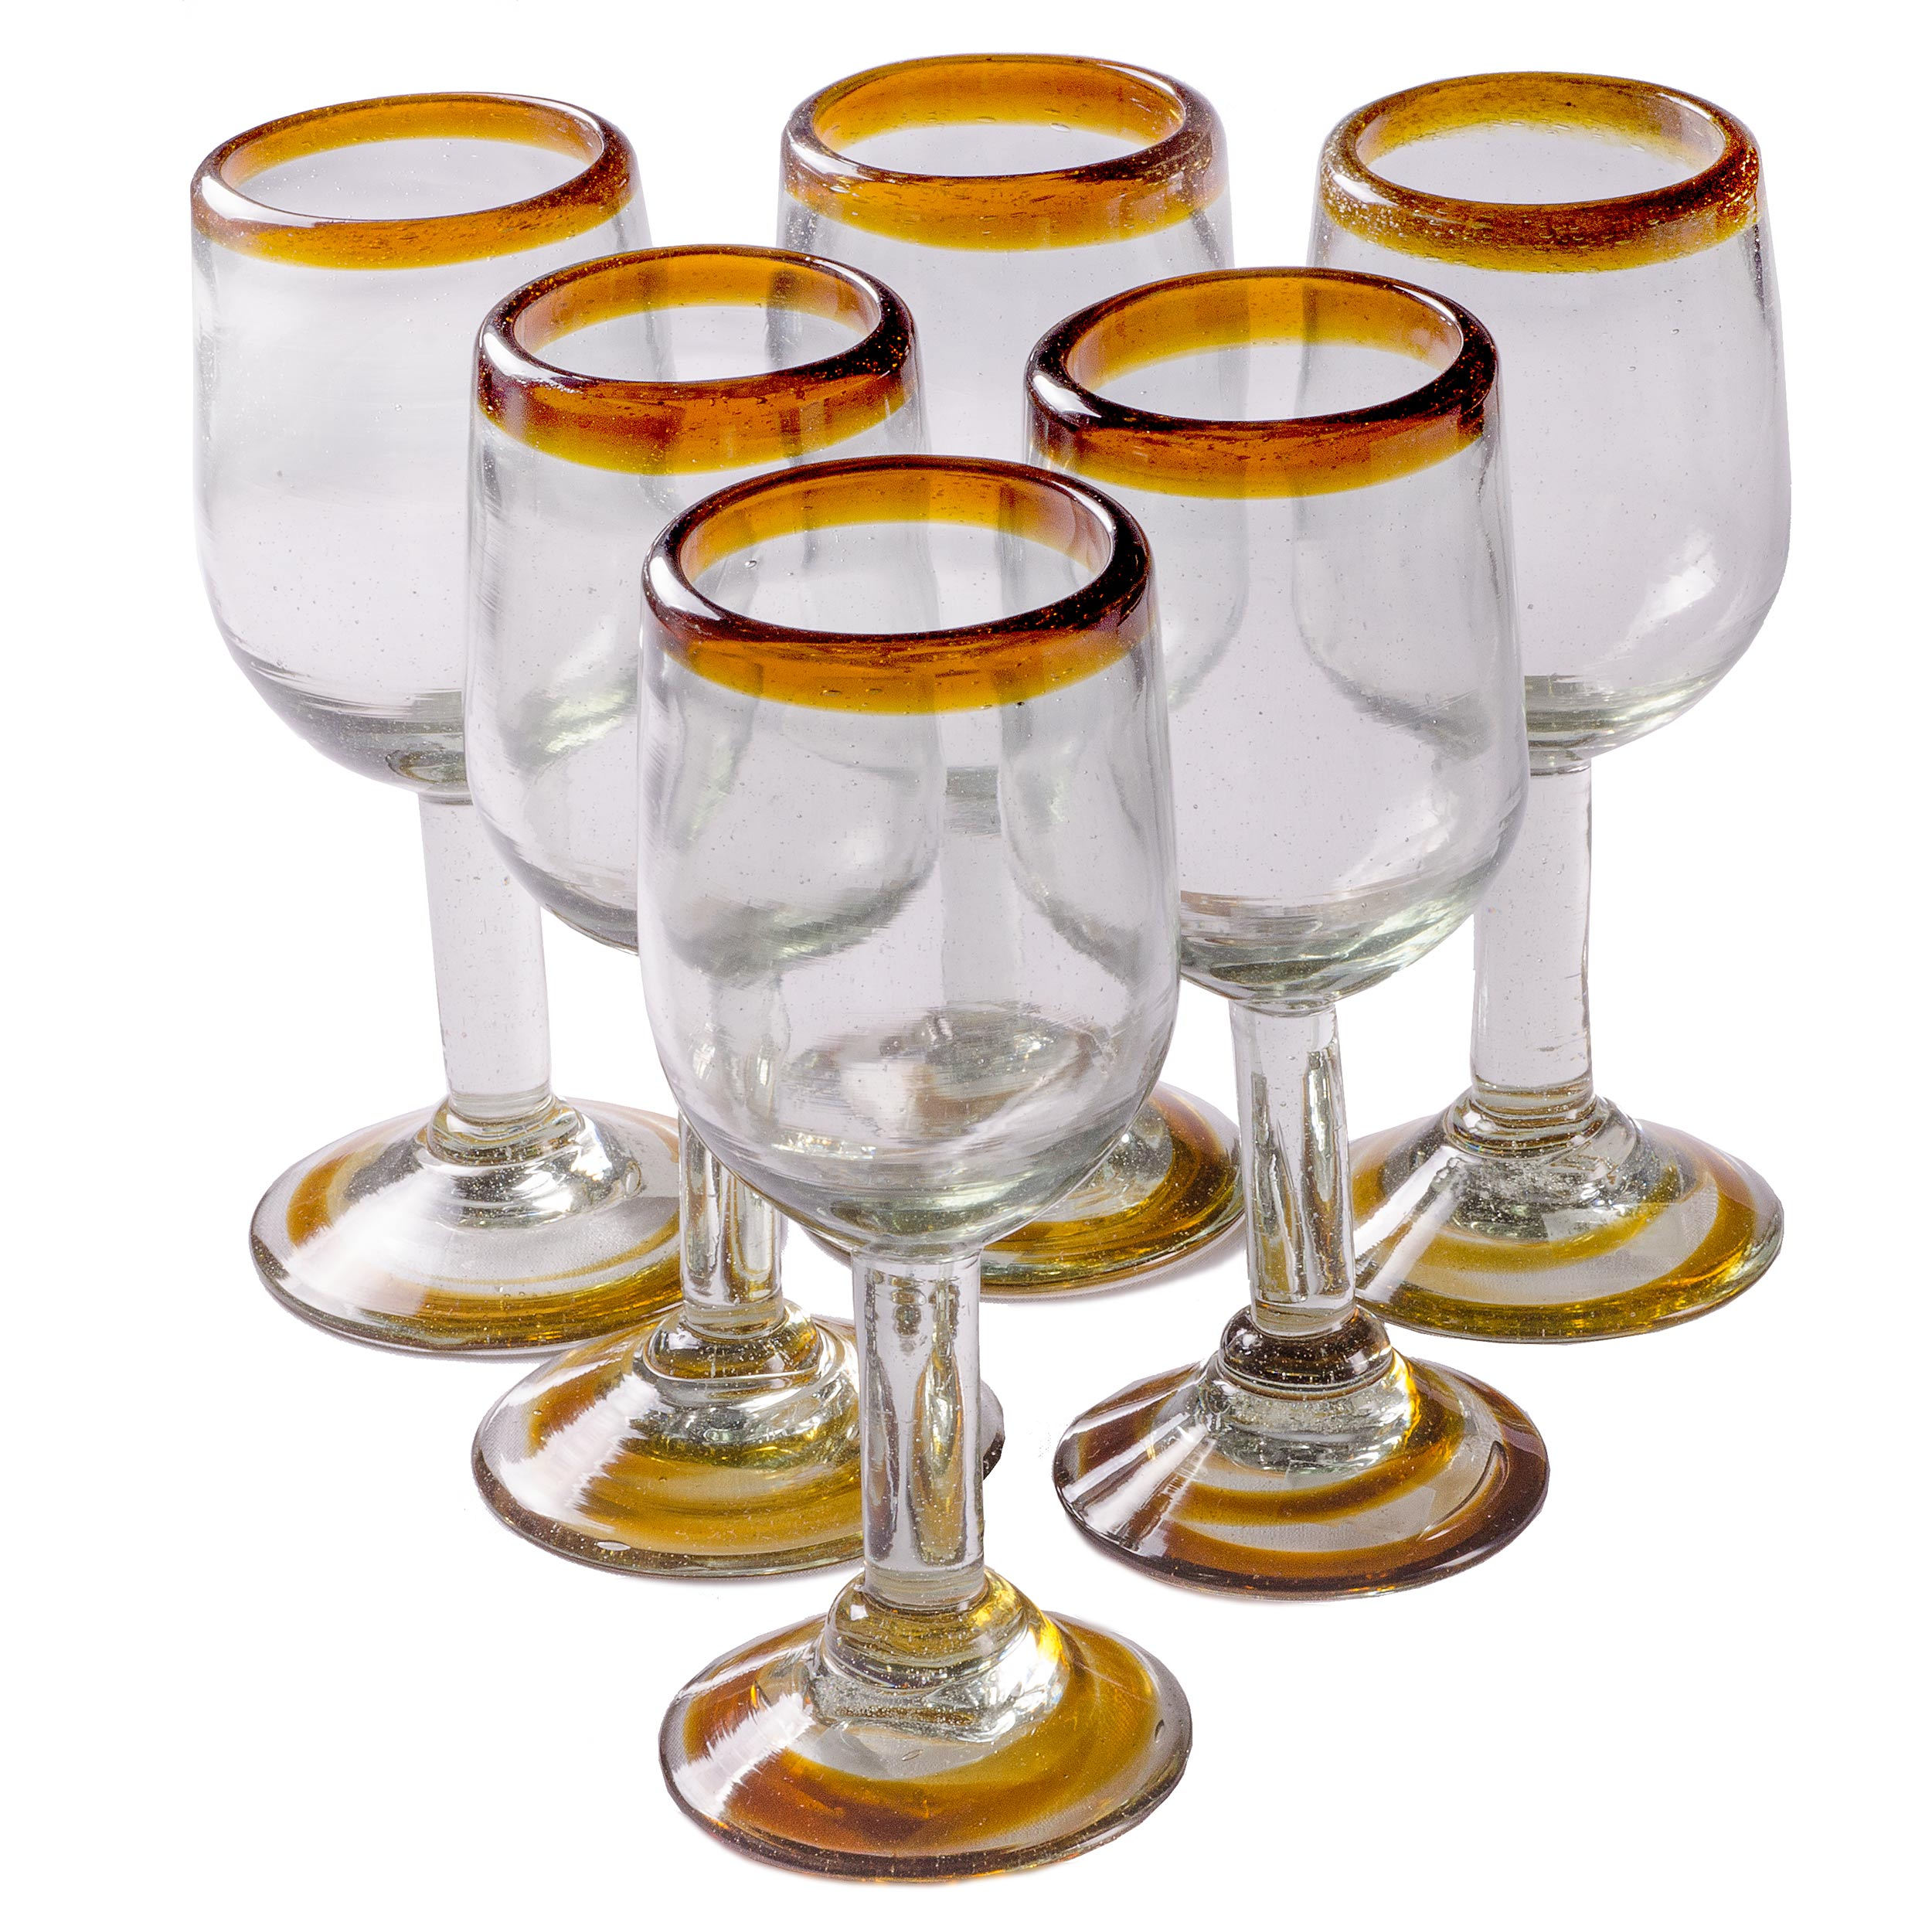 Orion Amber Rim 11 oz Tulip Wine - Set of 6 - Orion's Table Mexican Glassware